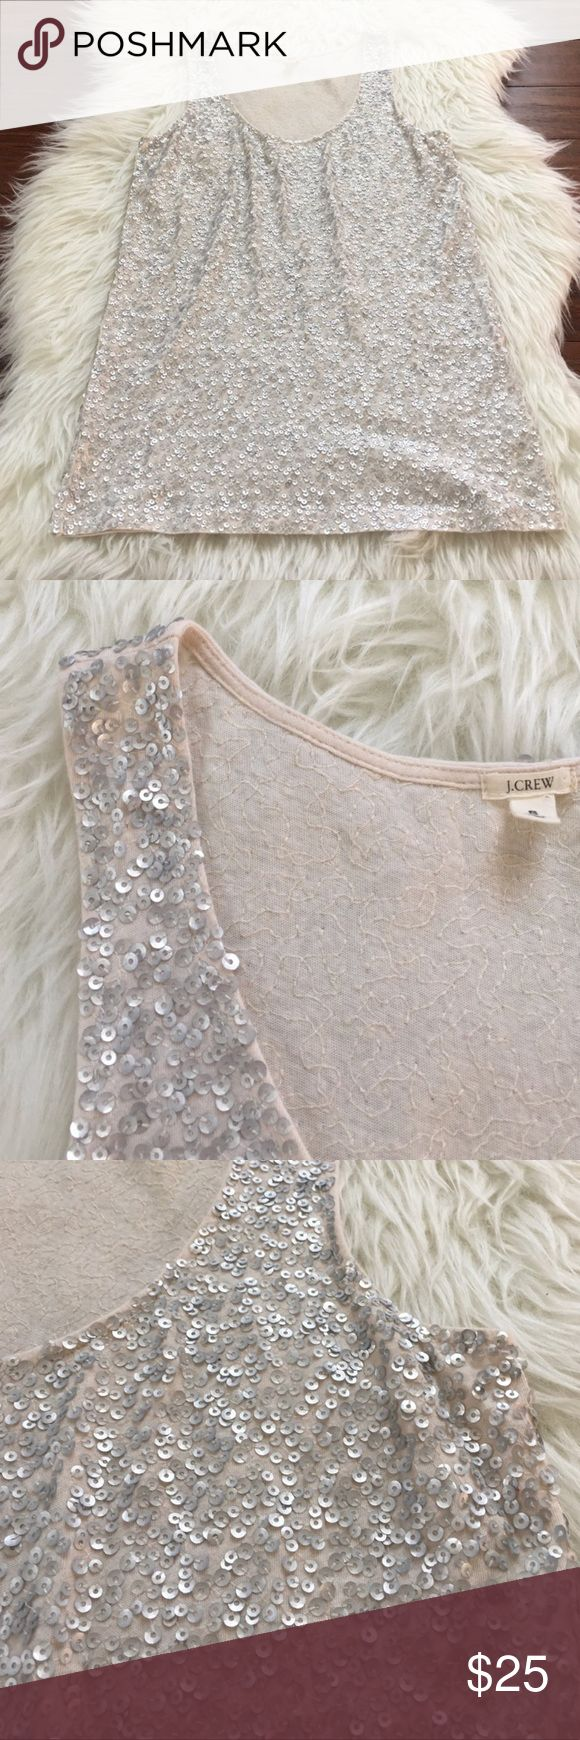 J.Crew Cream Sequin Tank Top Blouse In excellent used condition. No flaws. All sequins are intact. Beautiful piece on its own or layered under a blazer or cardigan! J. Crew Tops Tank Tops